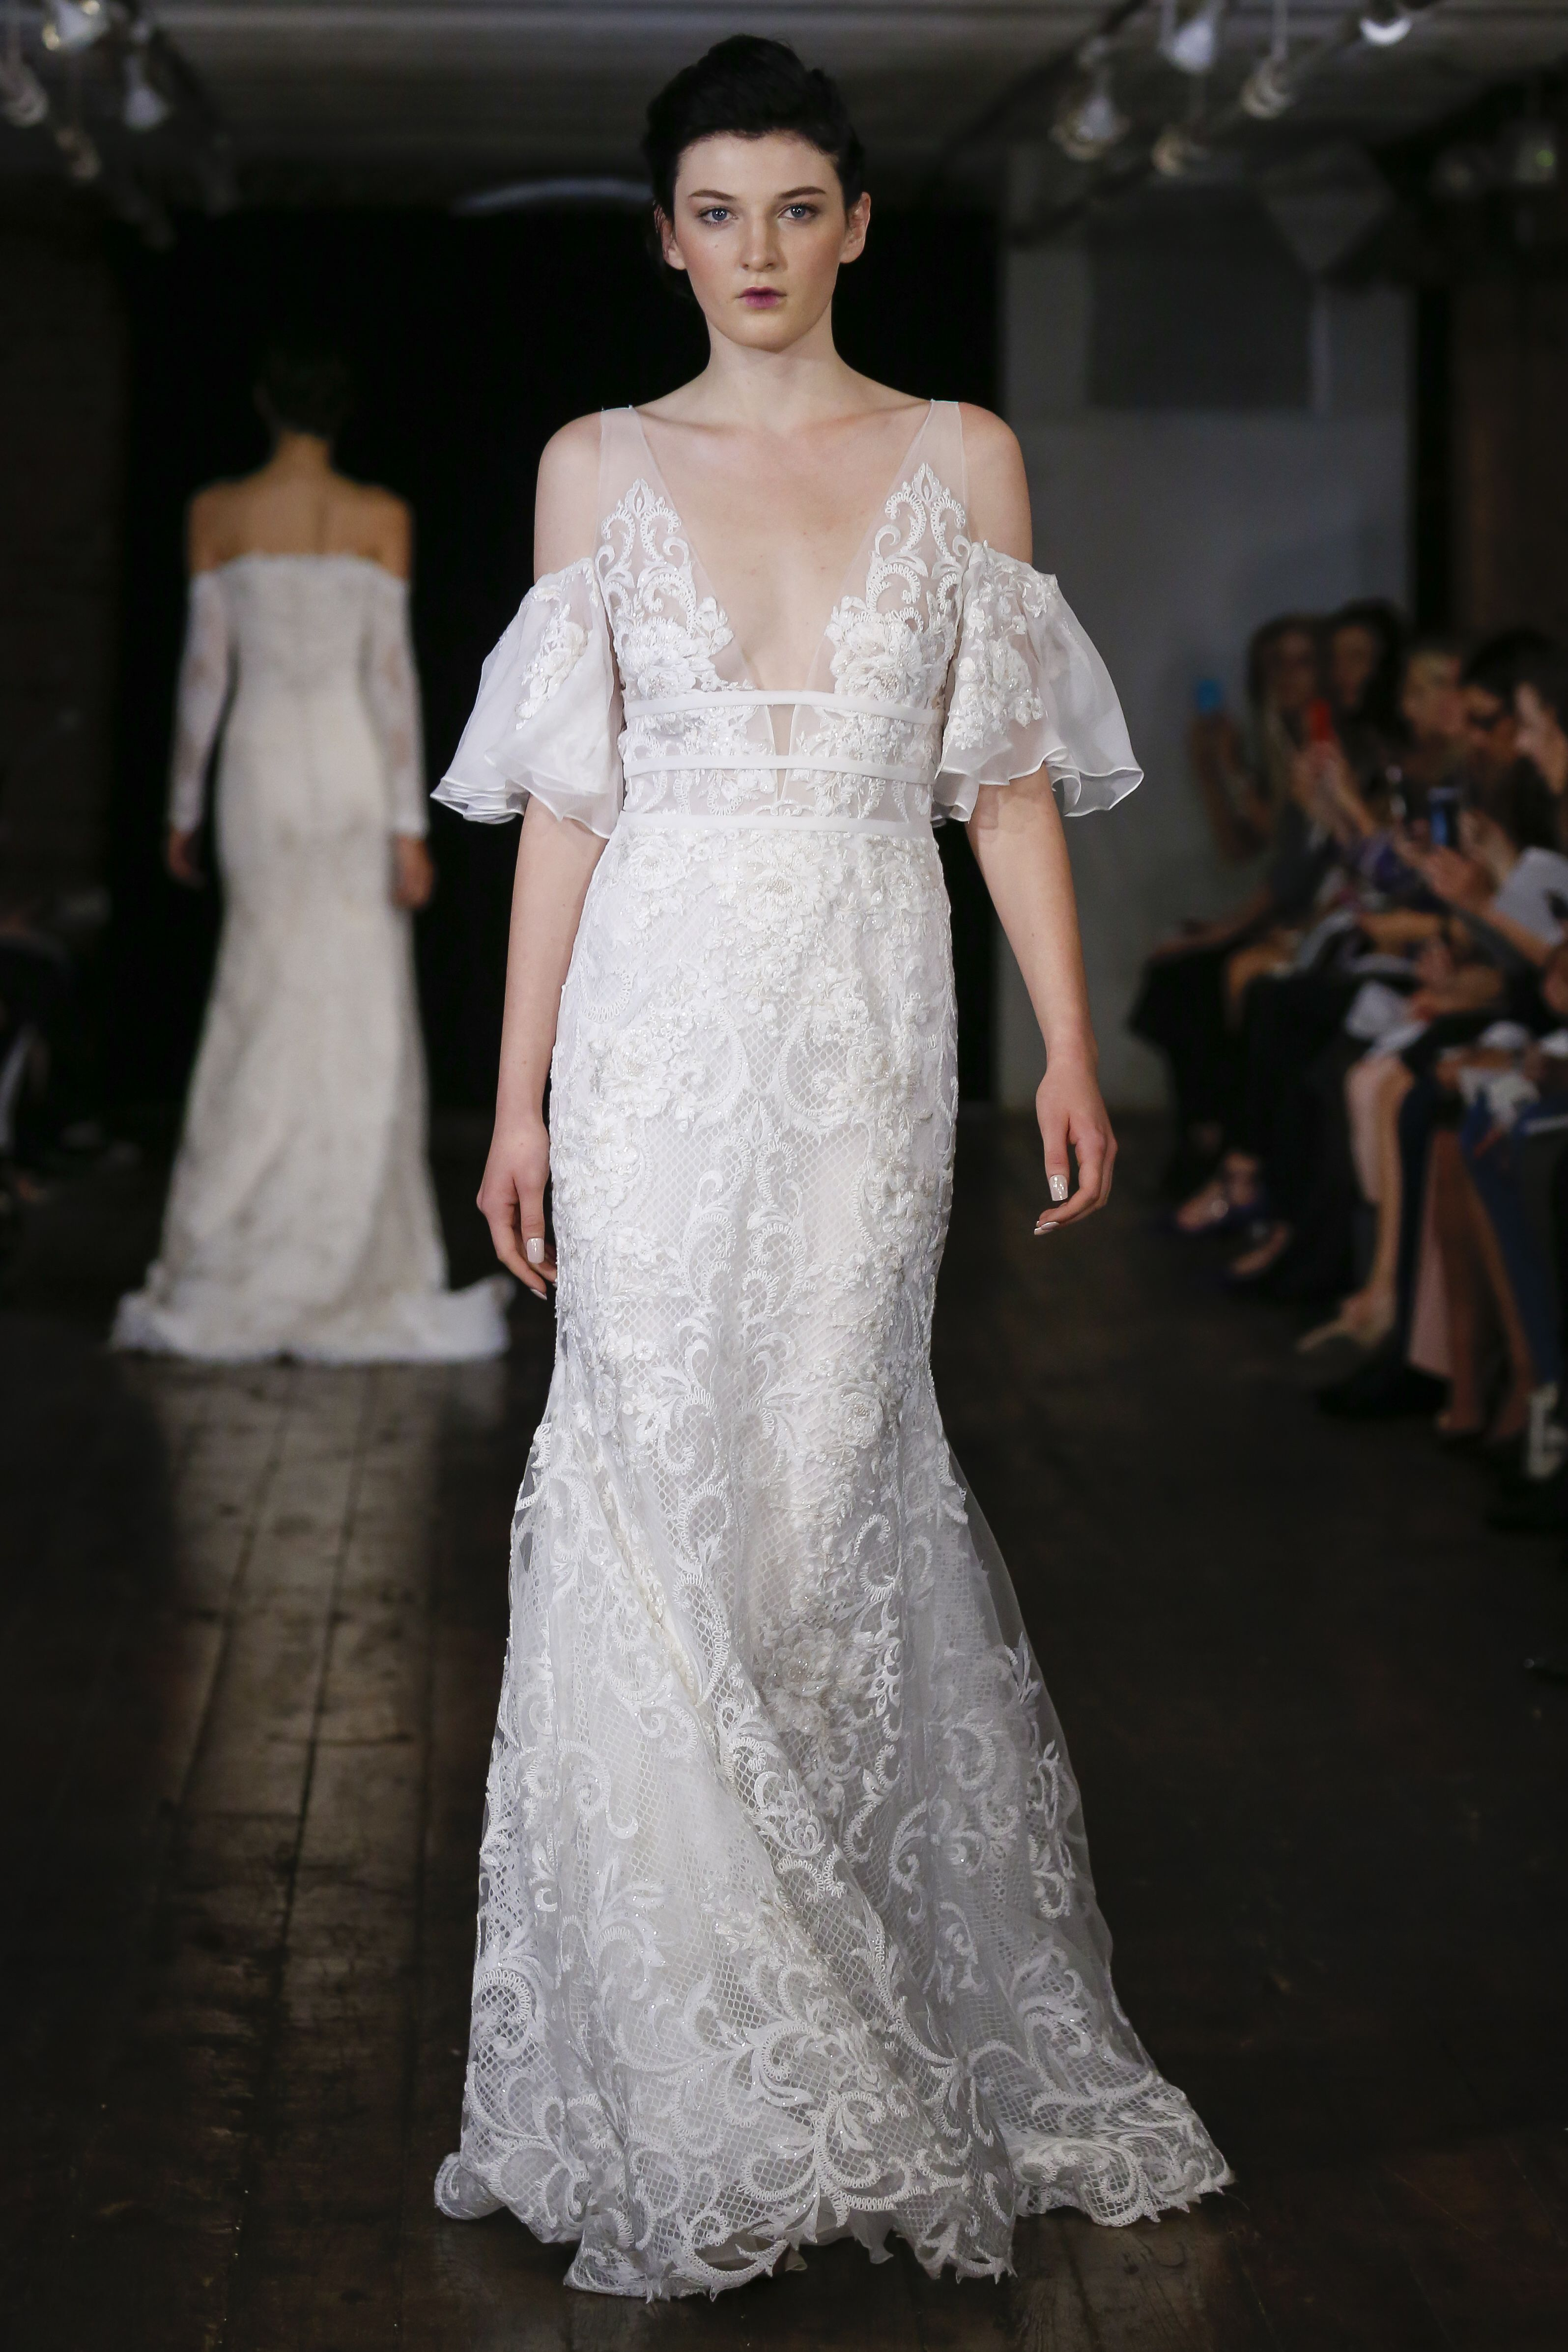 Lace wedding dress from the fallwinter rivini collection from